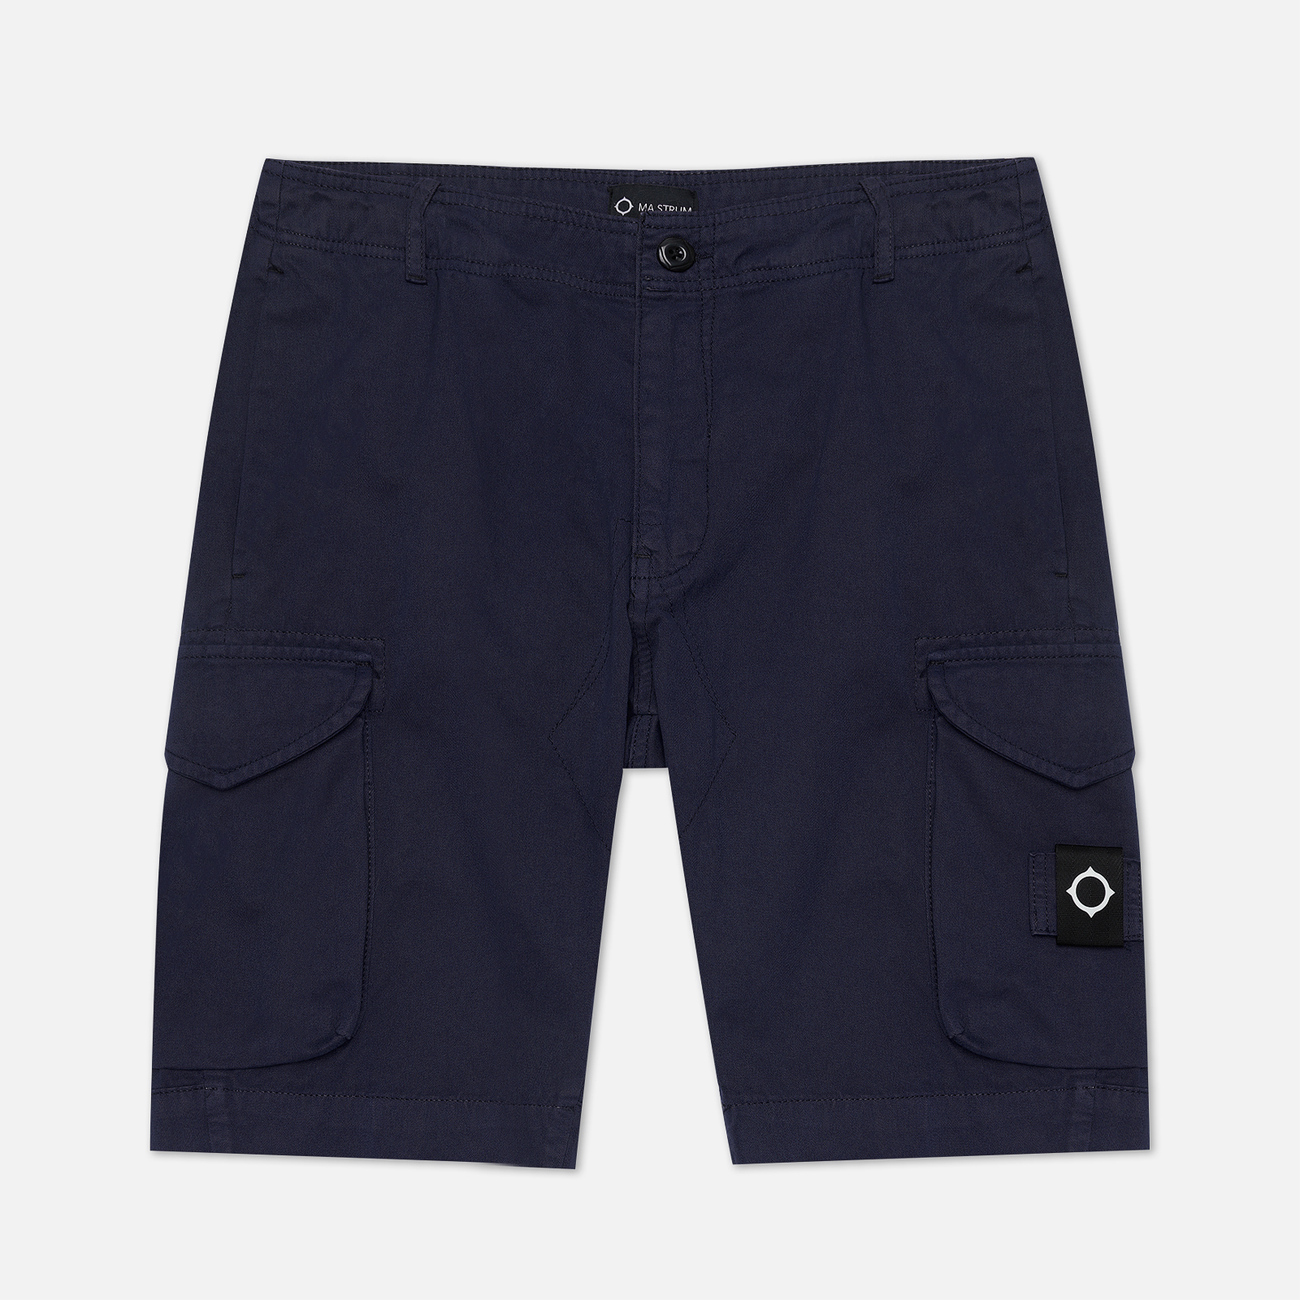 Мужские шорты MA.Strum Garment Dyed Cargo True Navy